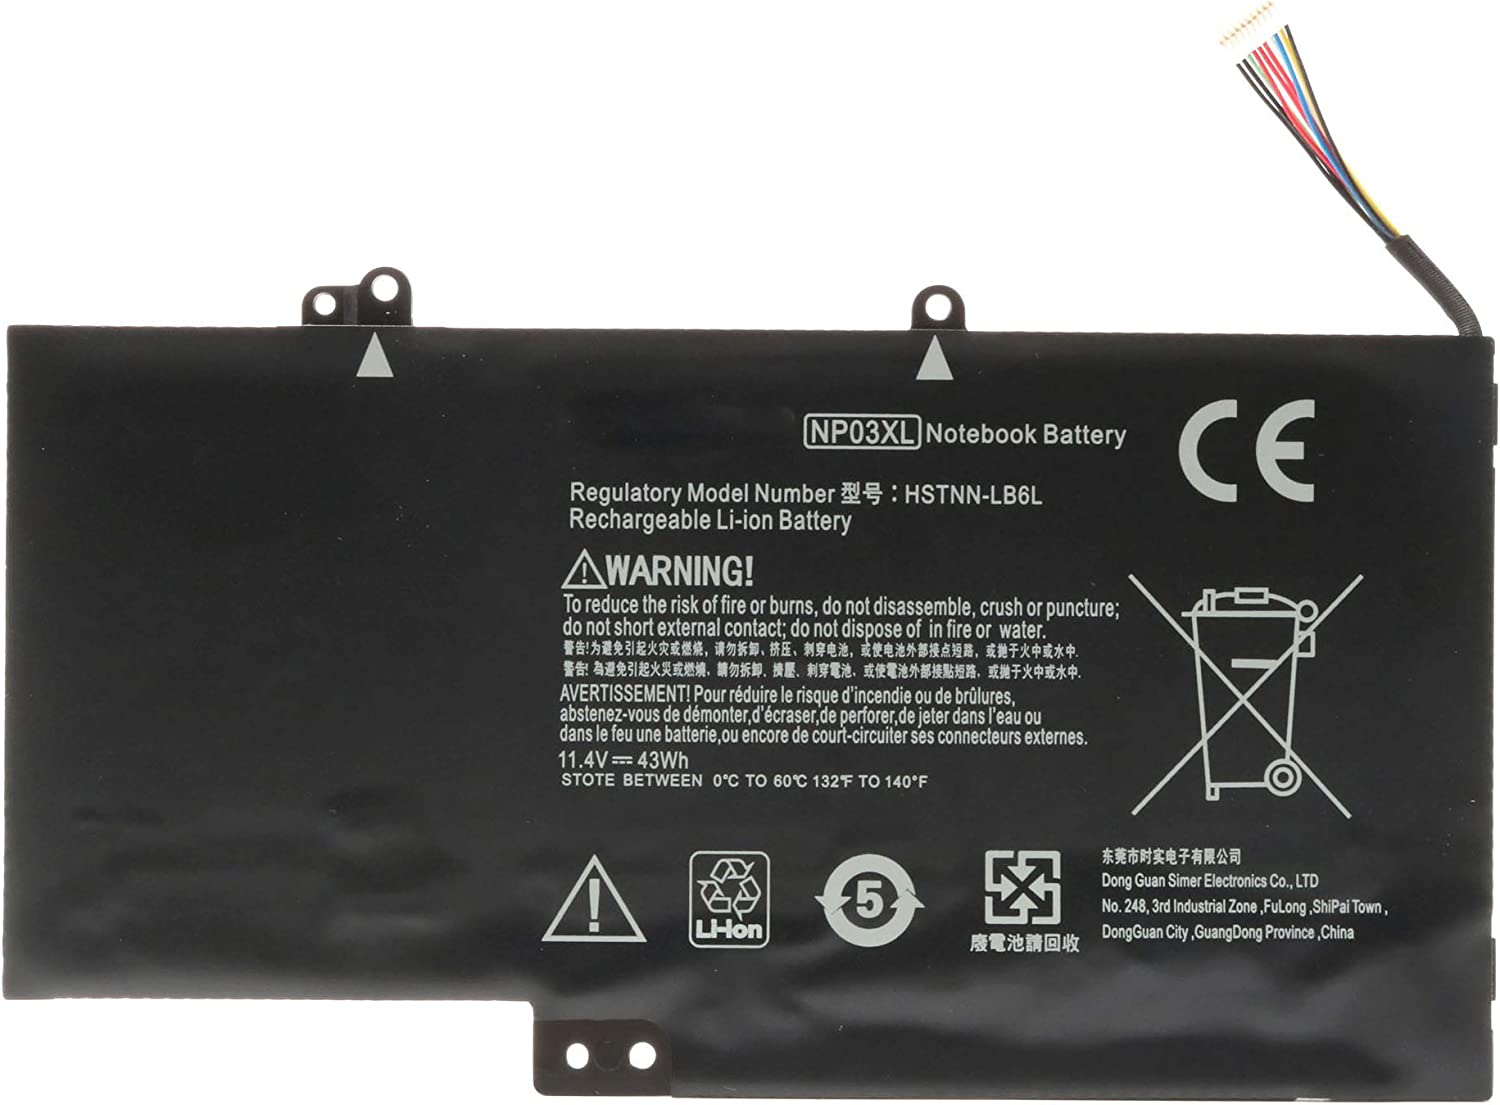 11.4V 43Wh NP03XL Laptop Battery for HP Envy X360 15-U010DX 15-U011DX 15-U110DX 15-U111DX,HP Pavilion X360 13-A010DX 13-A012DX 13-A013CL 13-A110DX,Fits P/N:761230-005 760944-421-18 HSTNN-LB6L TPN-Q146